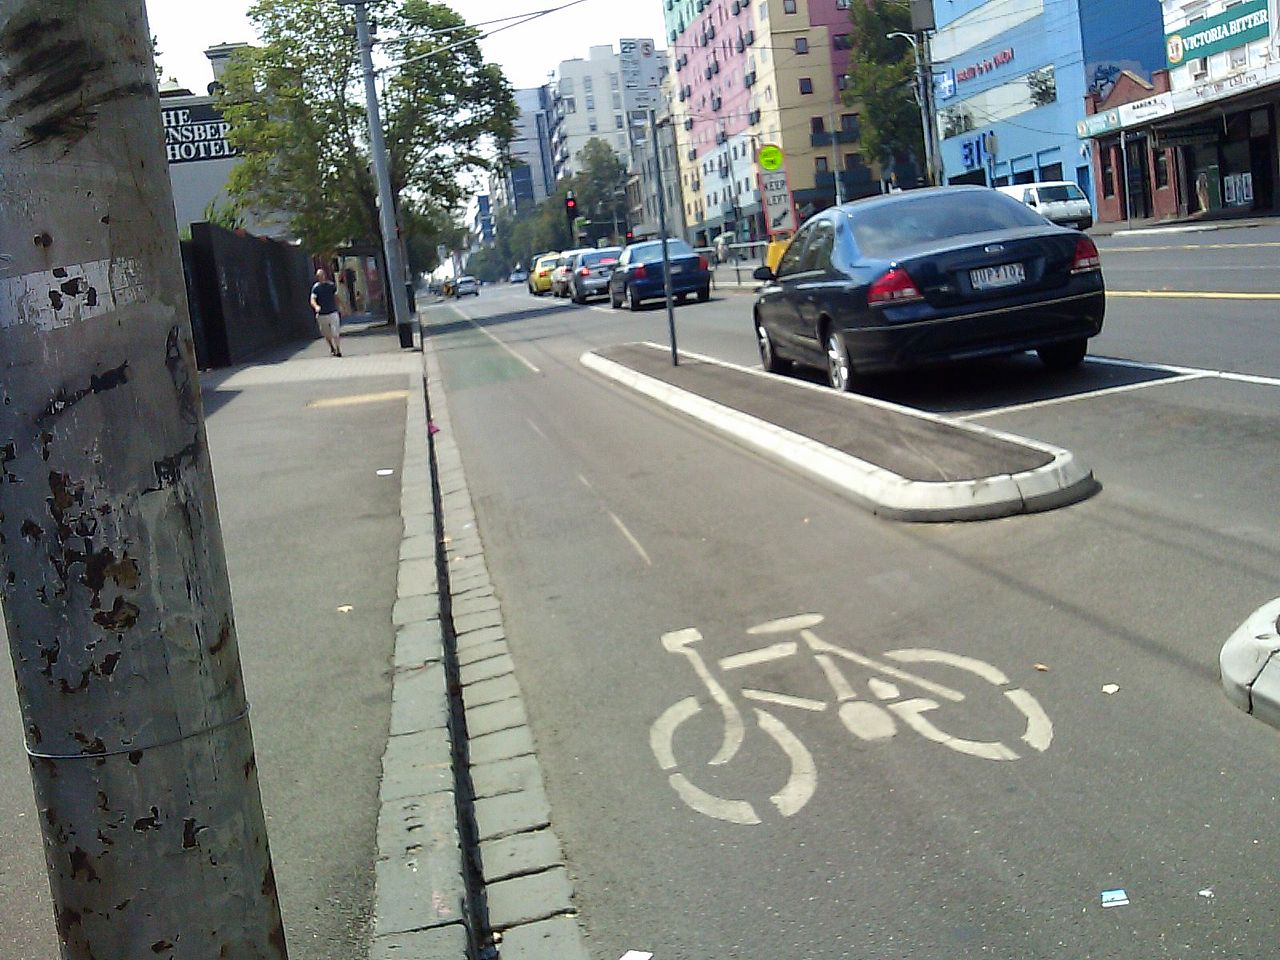 We're not totally sure what the Overland Park bike lanes will look like, but these here in Melbourne, Australia seem nice. (Image credit: Barrylb via commons.wikimedia.org)